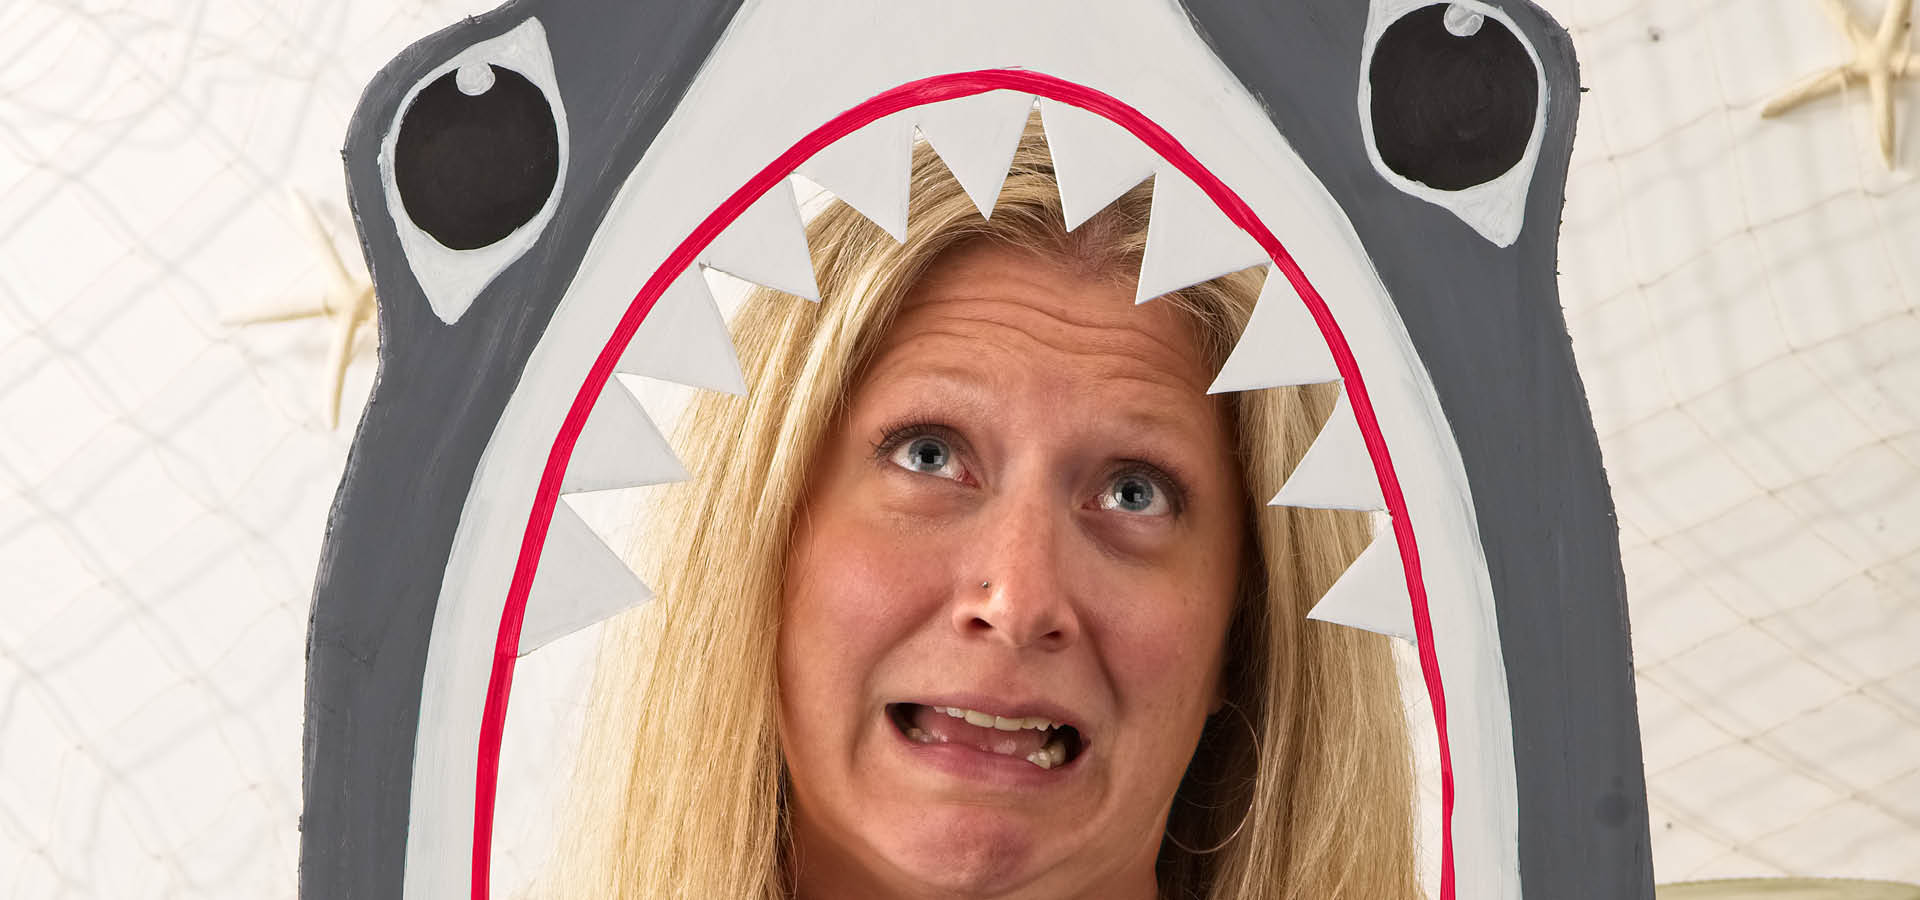 shark-tooth-photo-booth